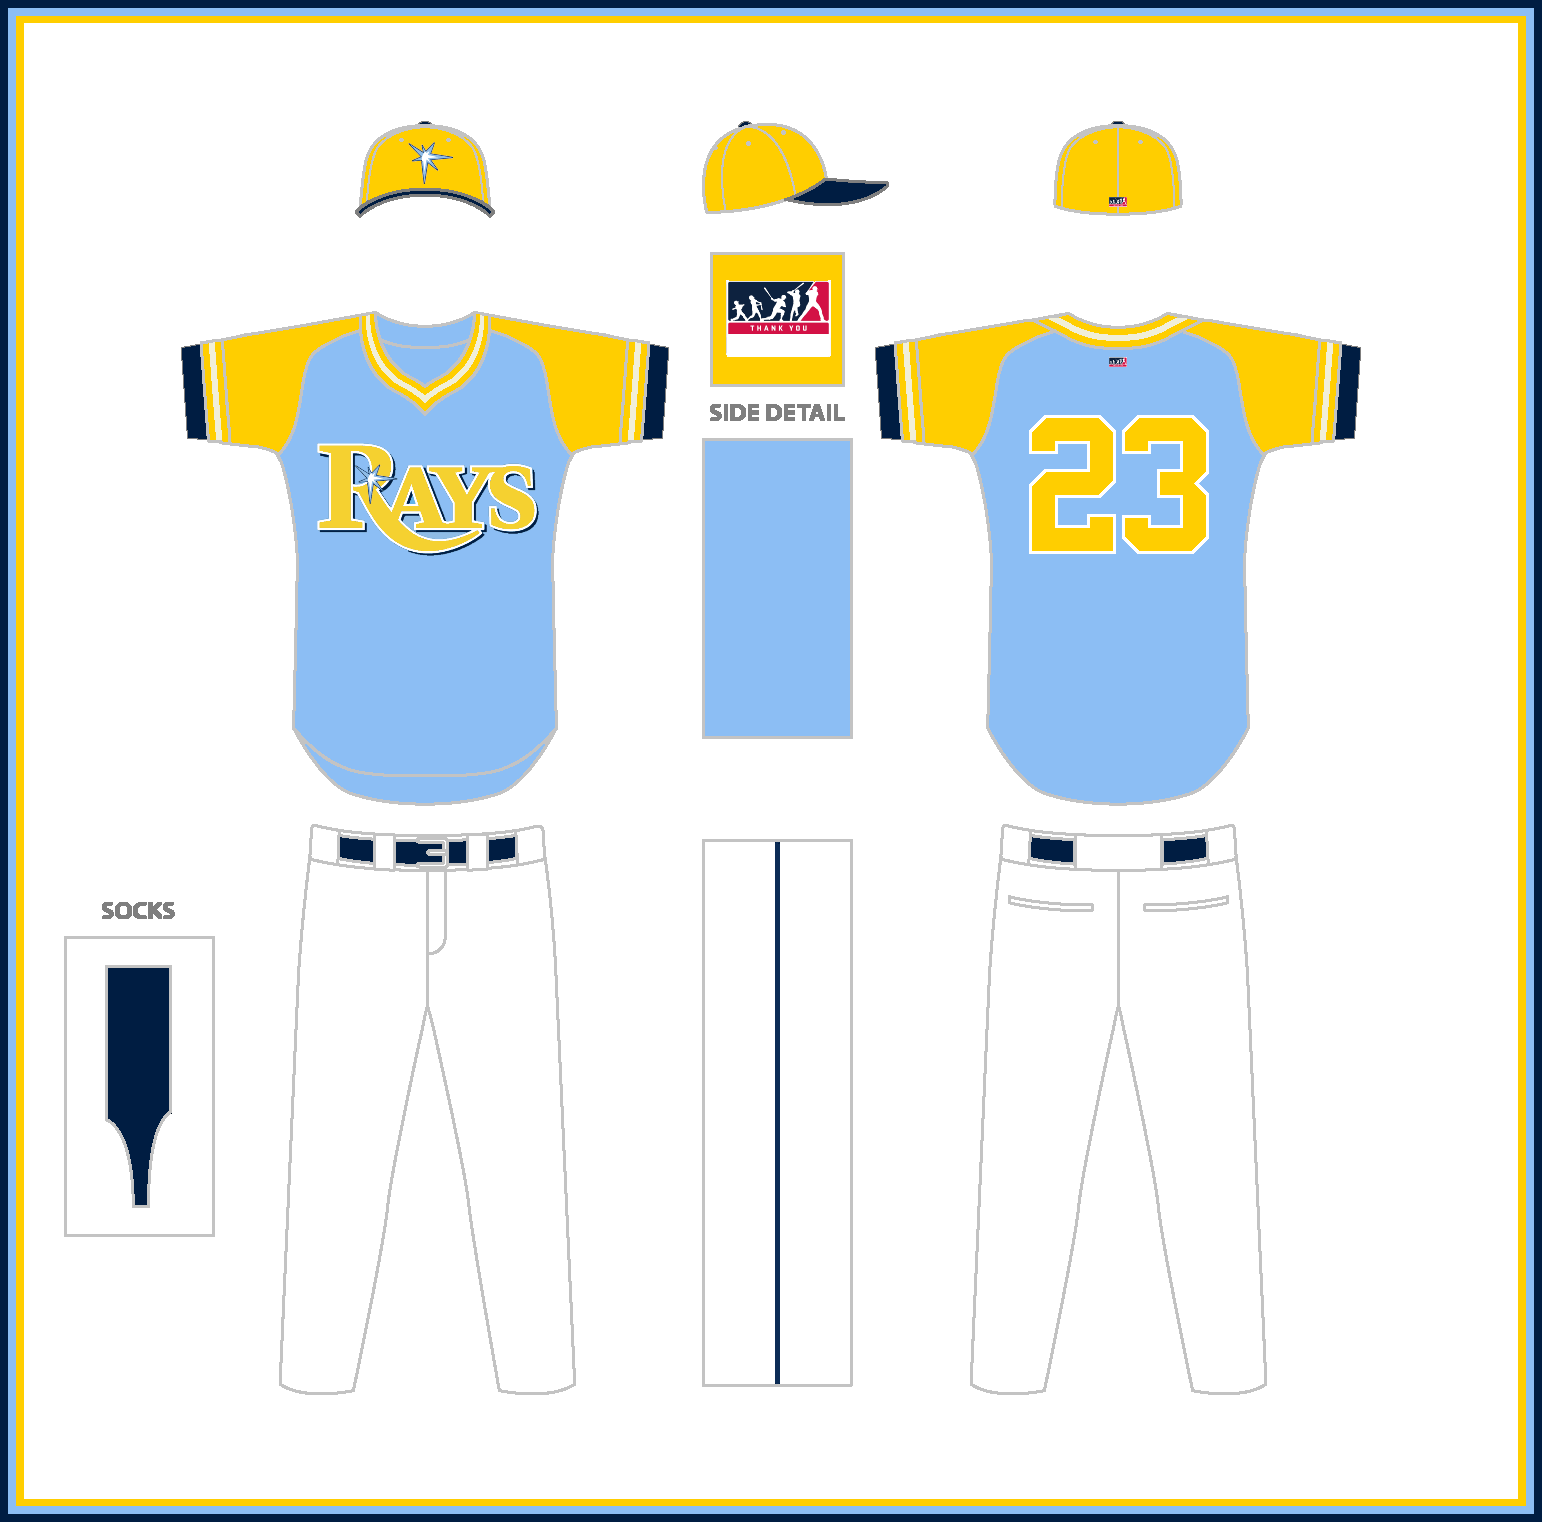 Rays_w_outline.png